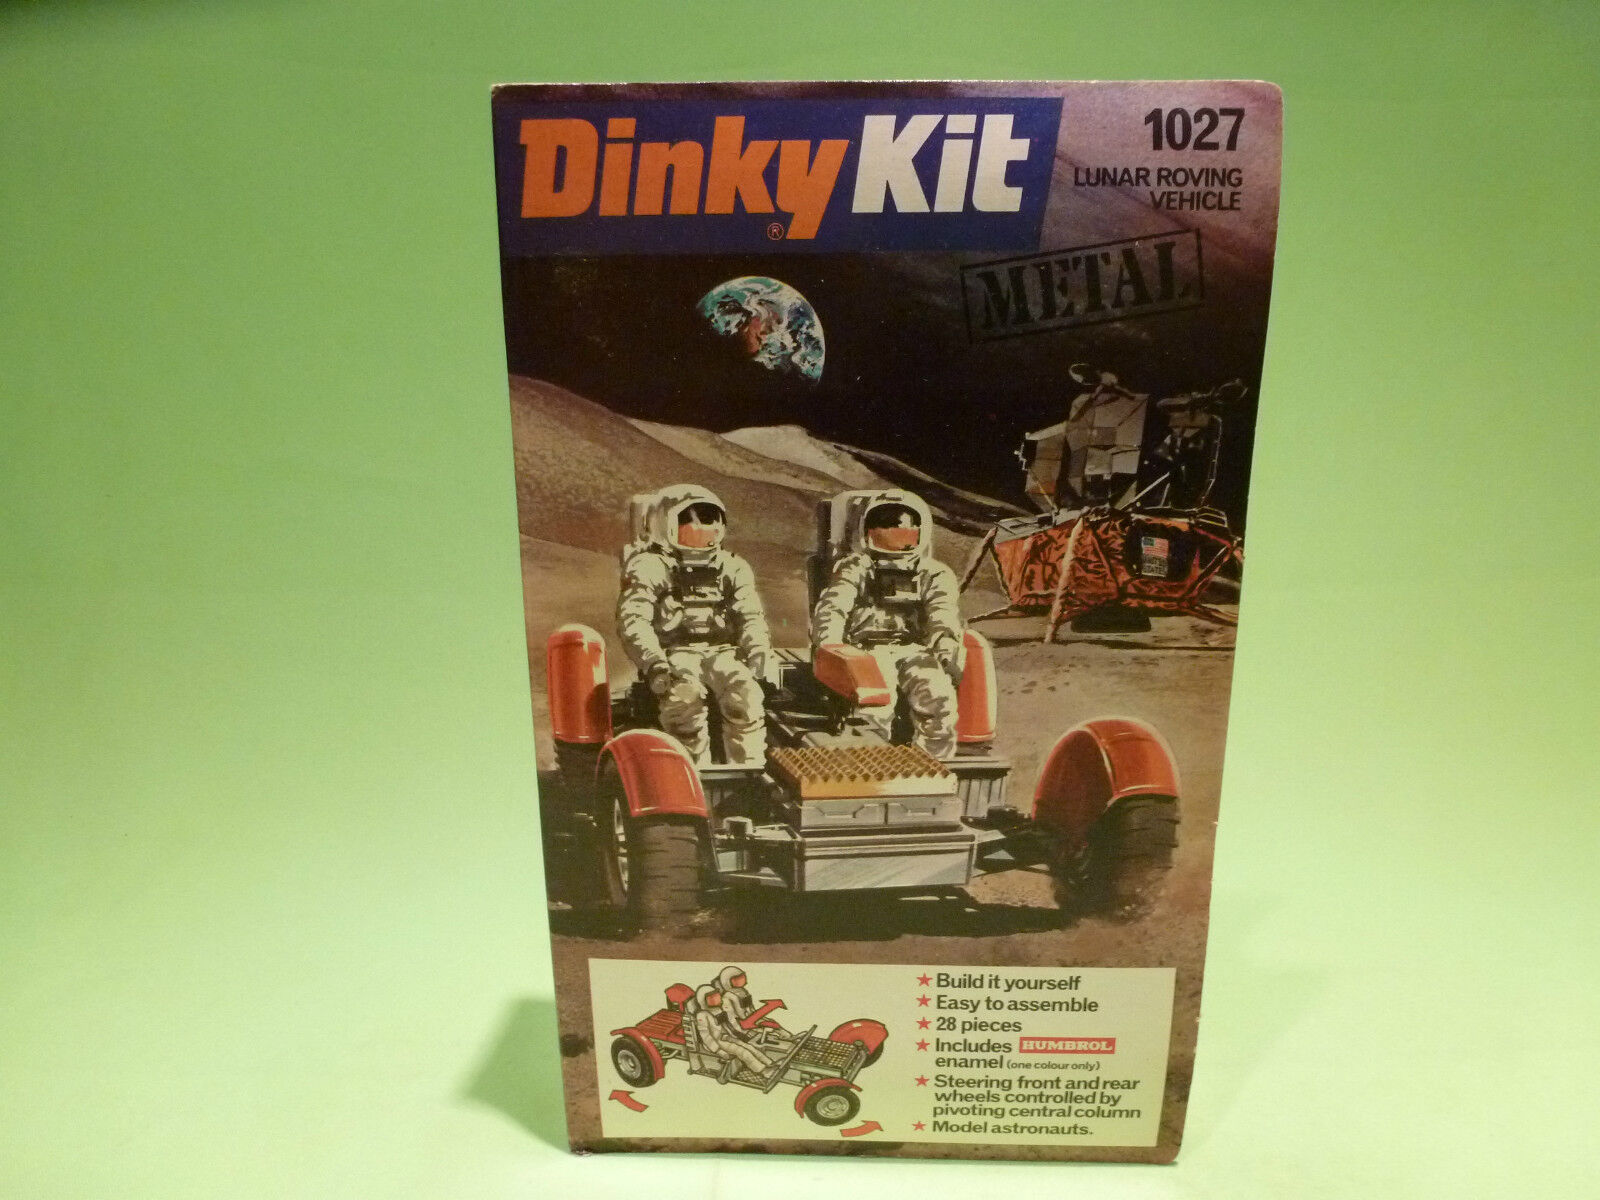 DINKY TOYS KIT 1027  - LUNAR ROVING VEHICLE   -  IN GOOD CONDITION  -  IN BOX